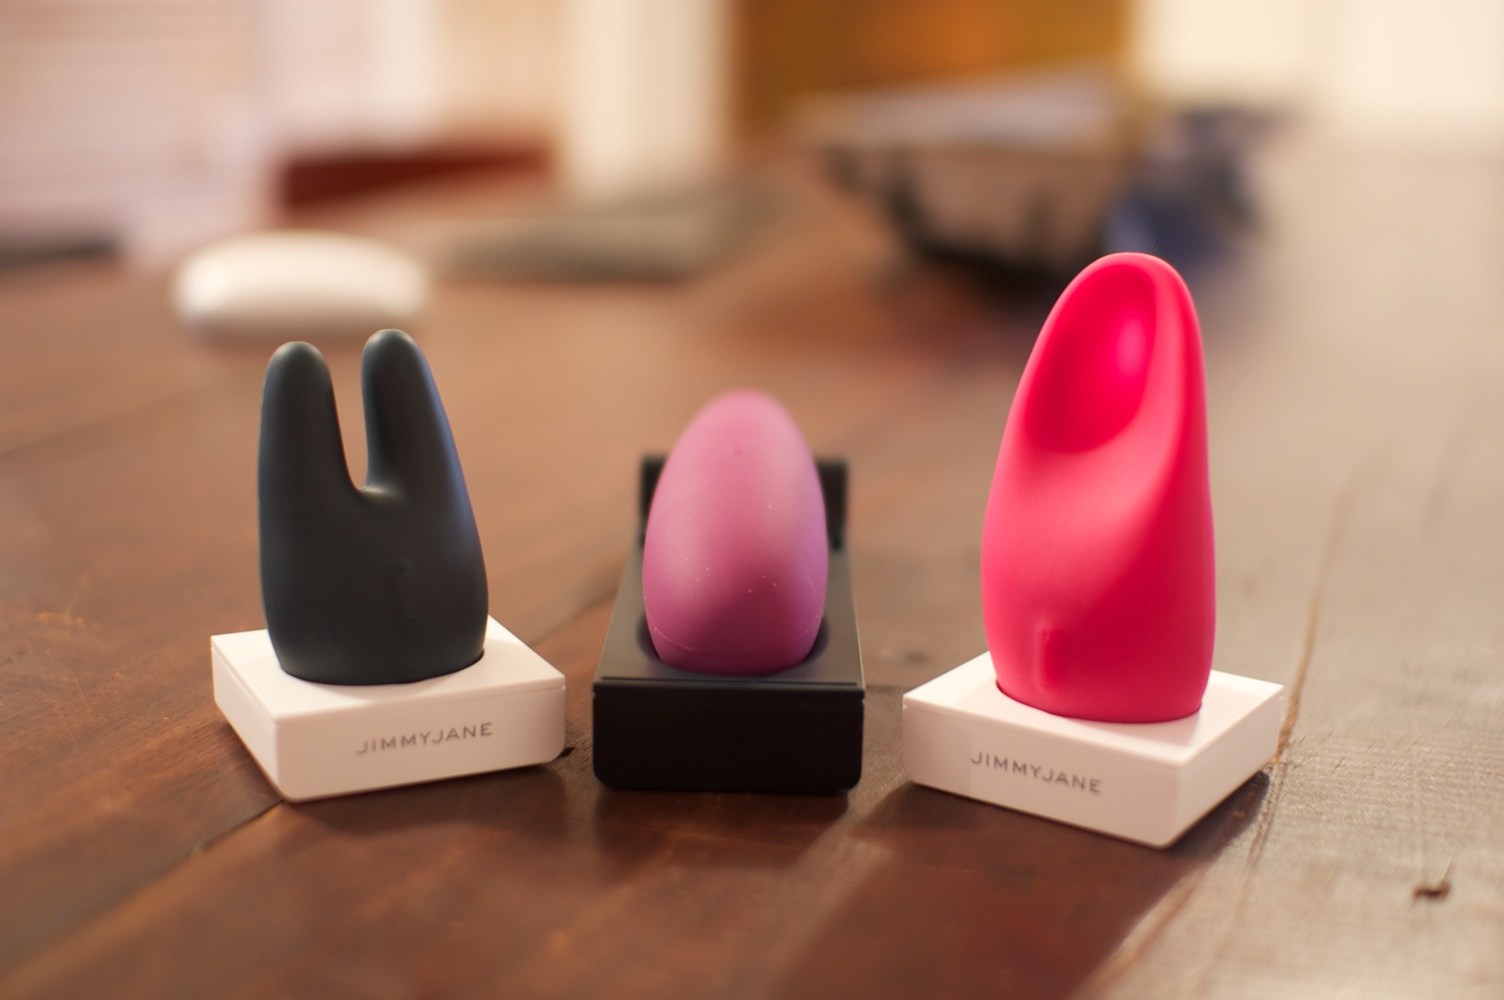 You may have noticed our bias towards really beautifully designed sex toys.